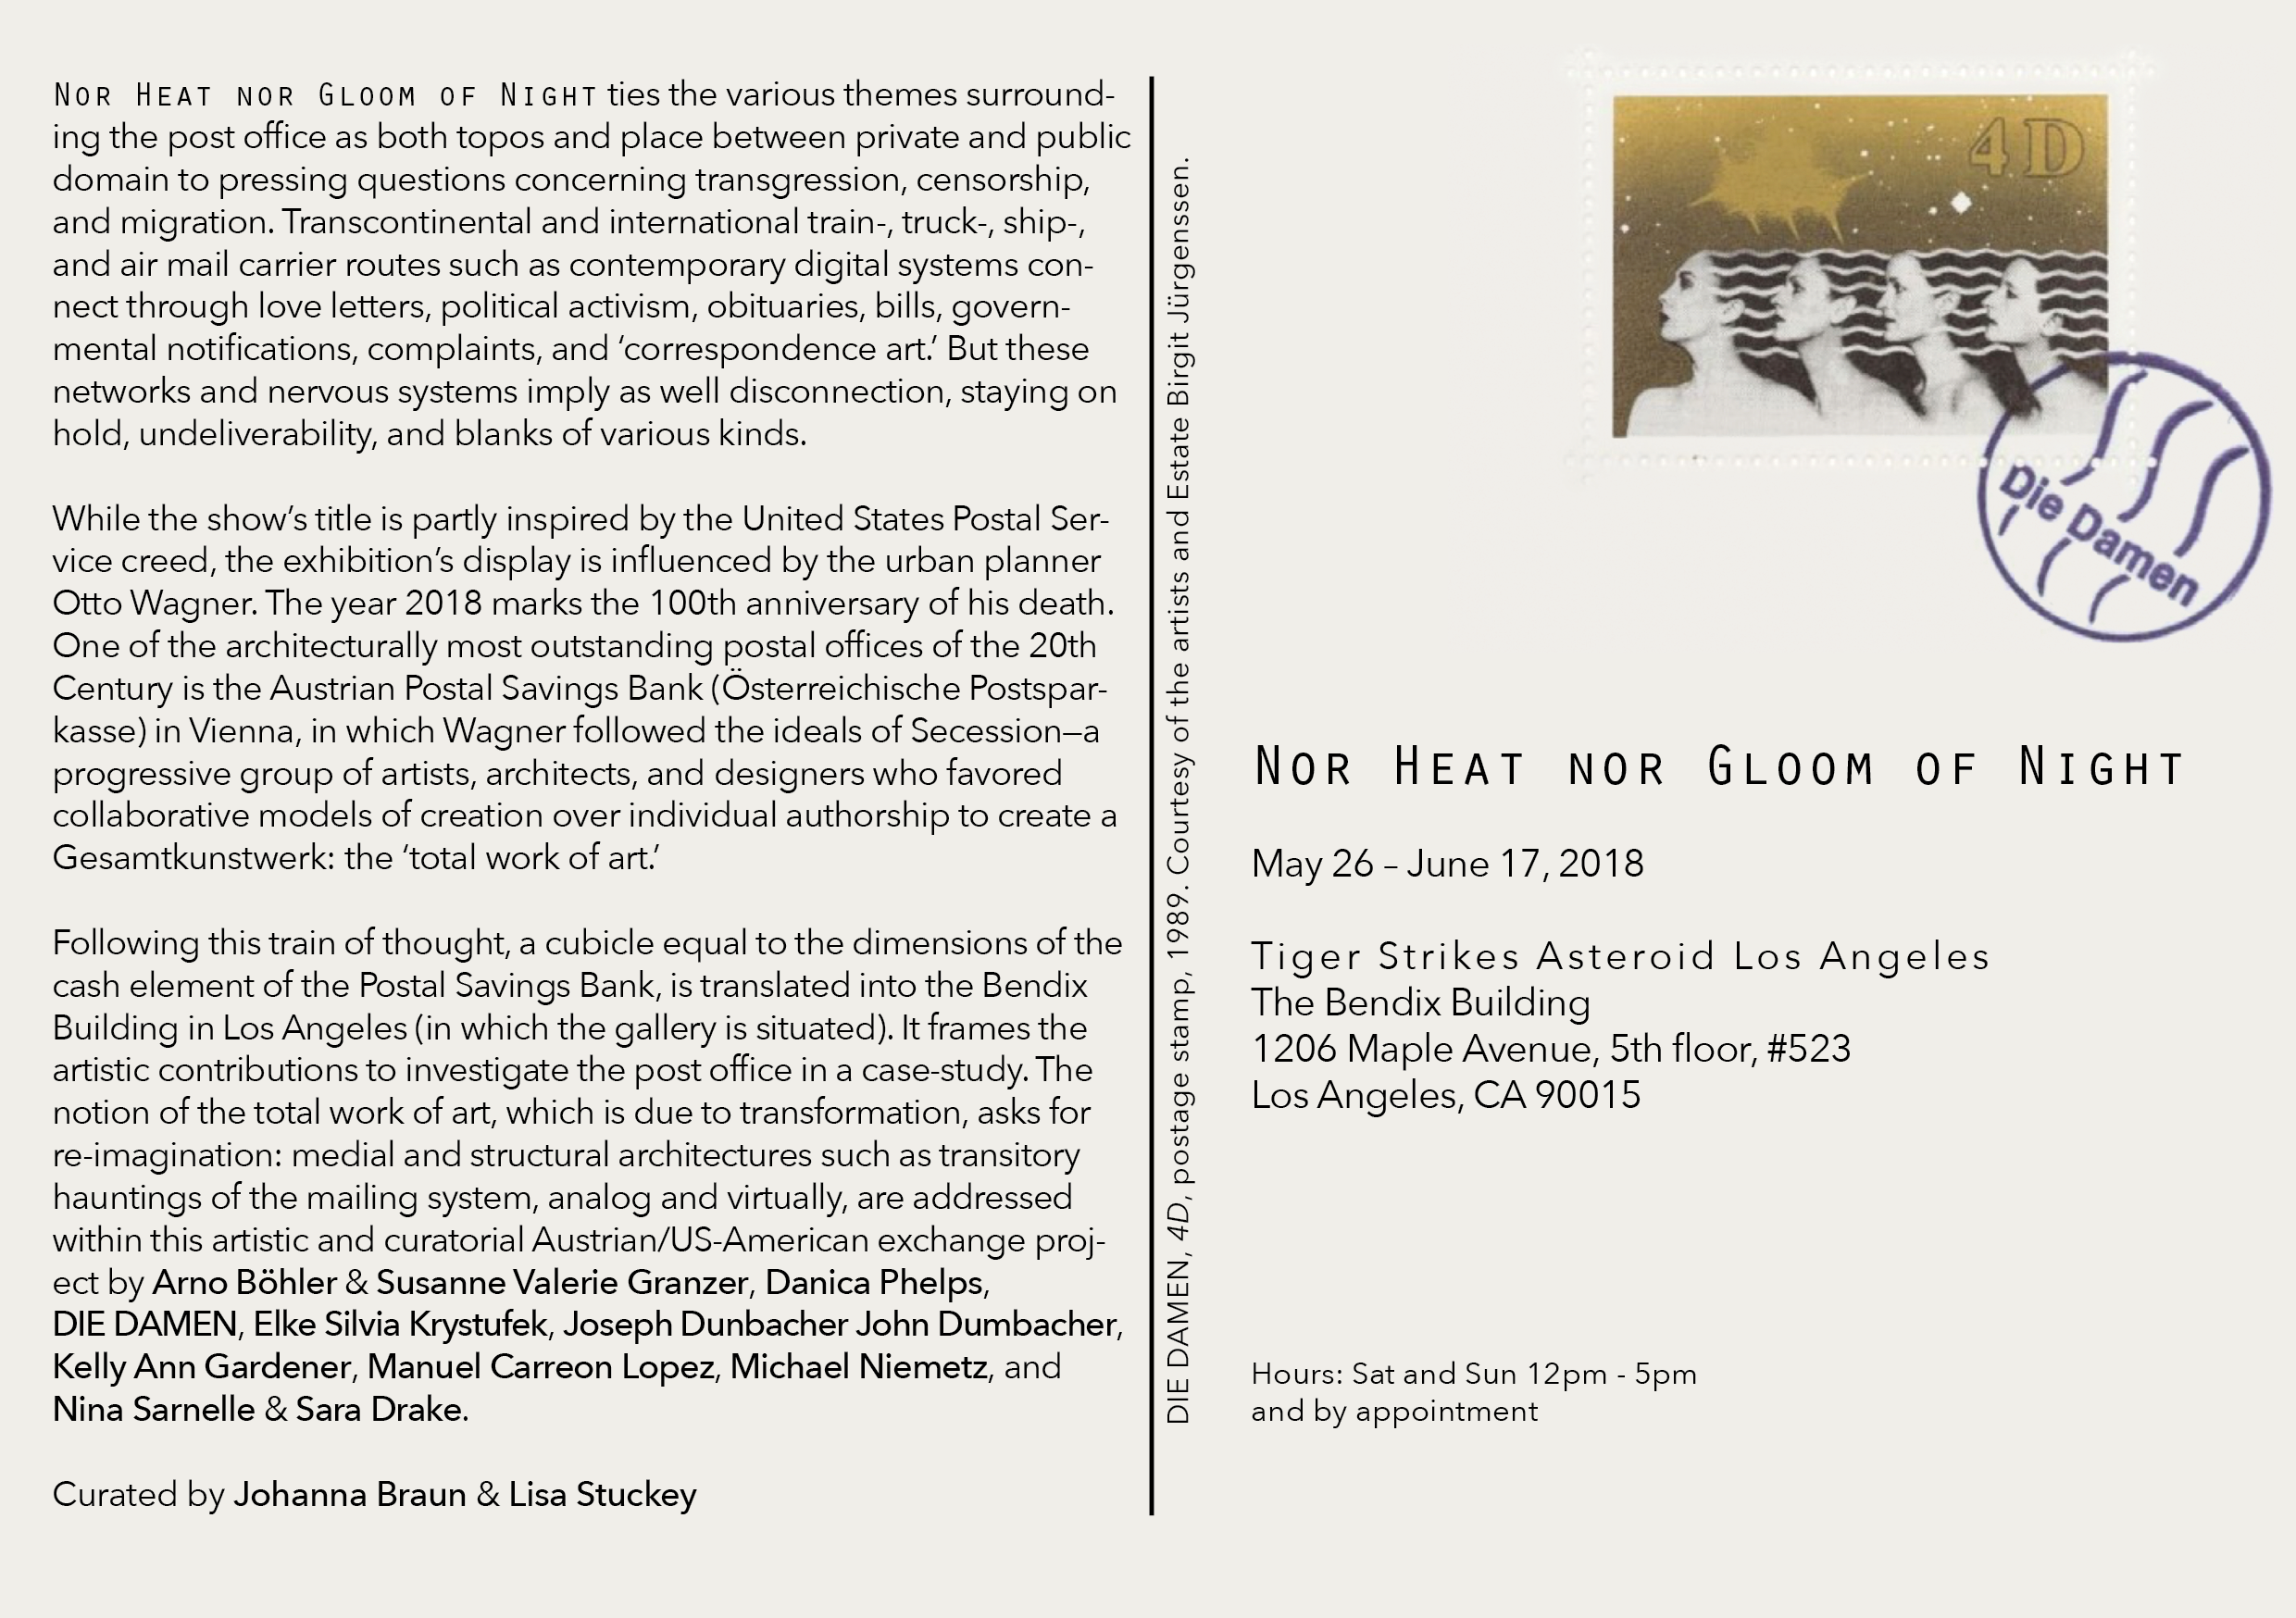 invitation_card_Nor_Heat_not_Gloom_of_Night2.png